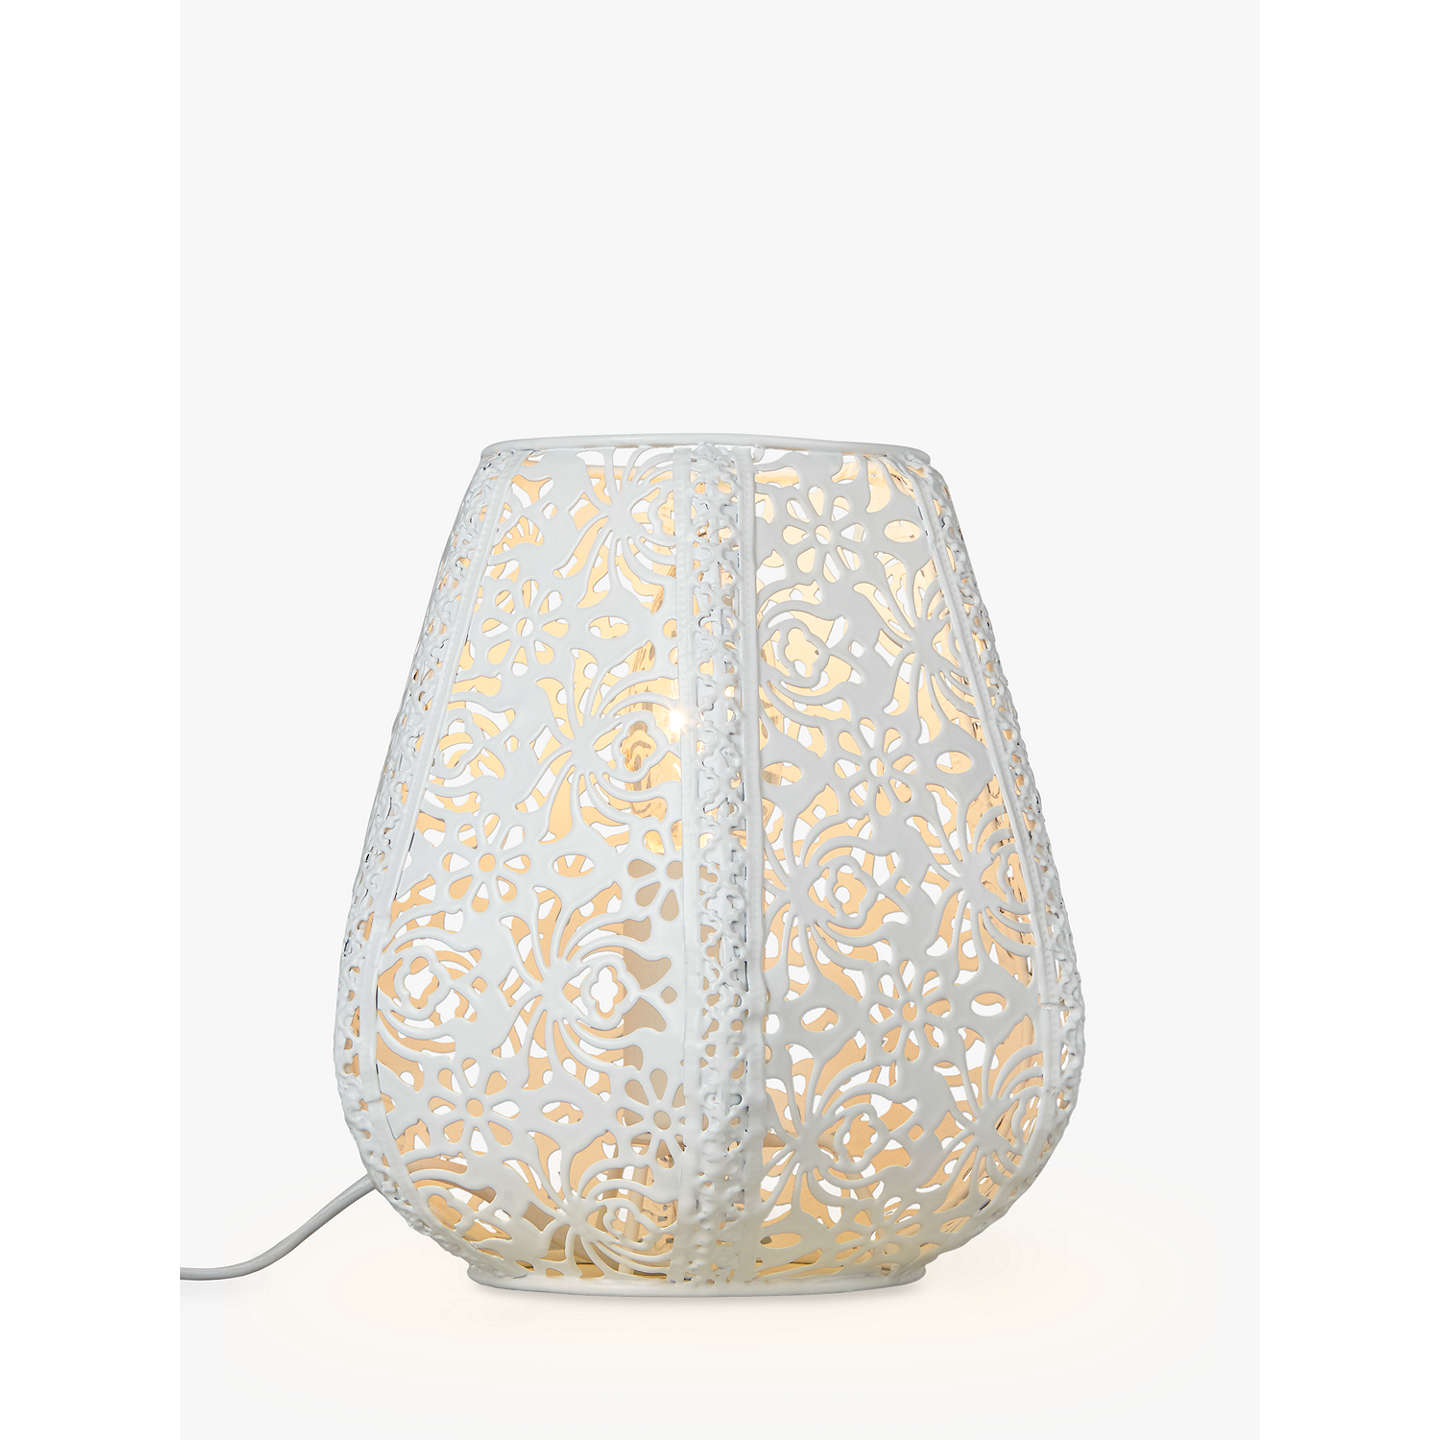 BuyJohn Lewis Rosanna Metal Fretwork Table Lamp, White Online at johnlewis.com